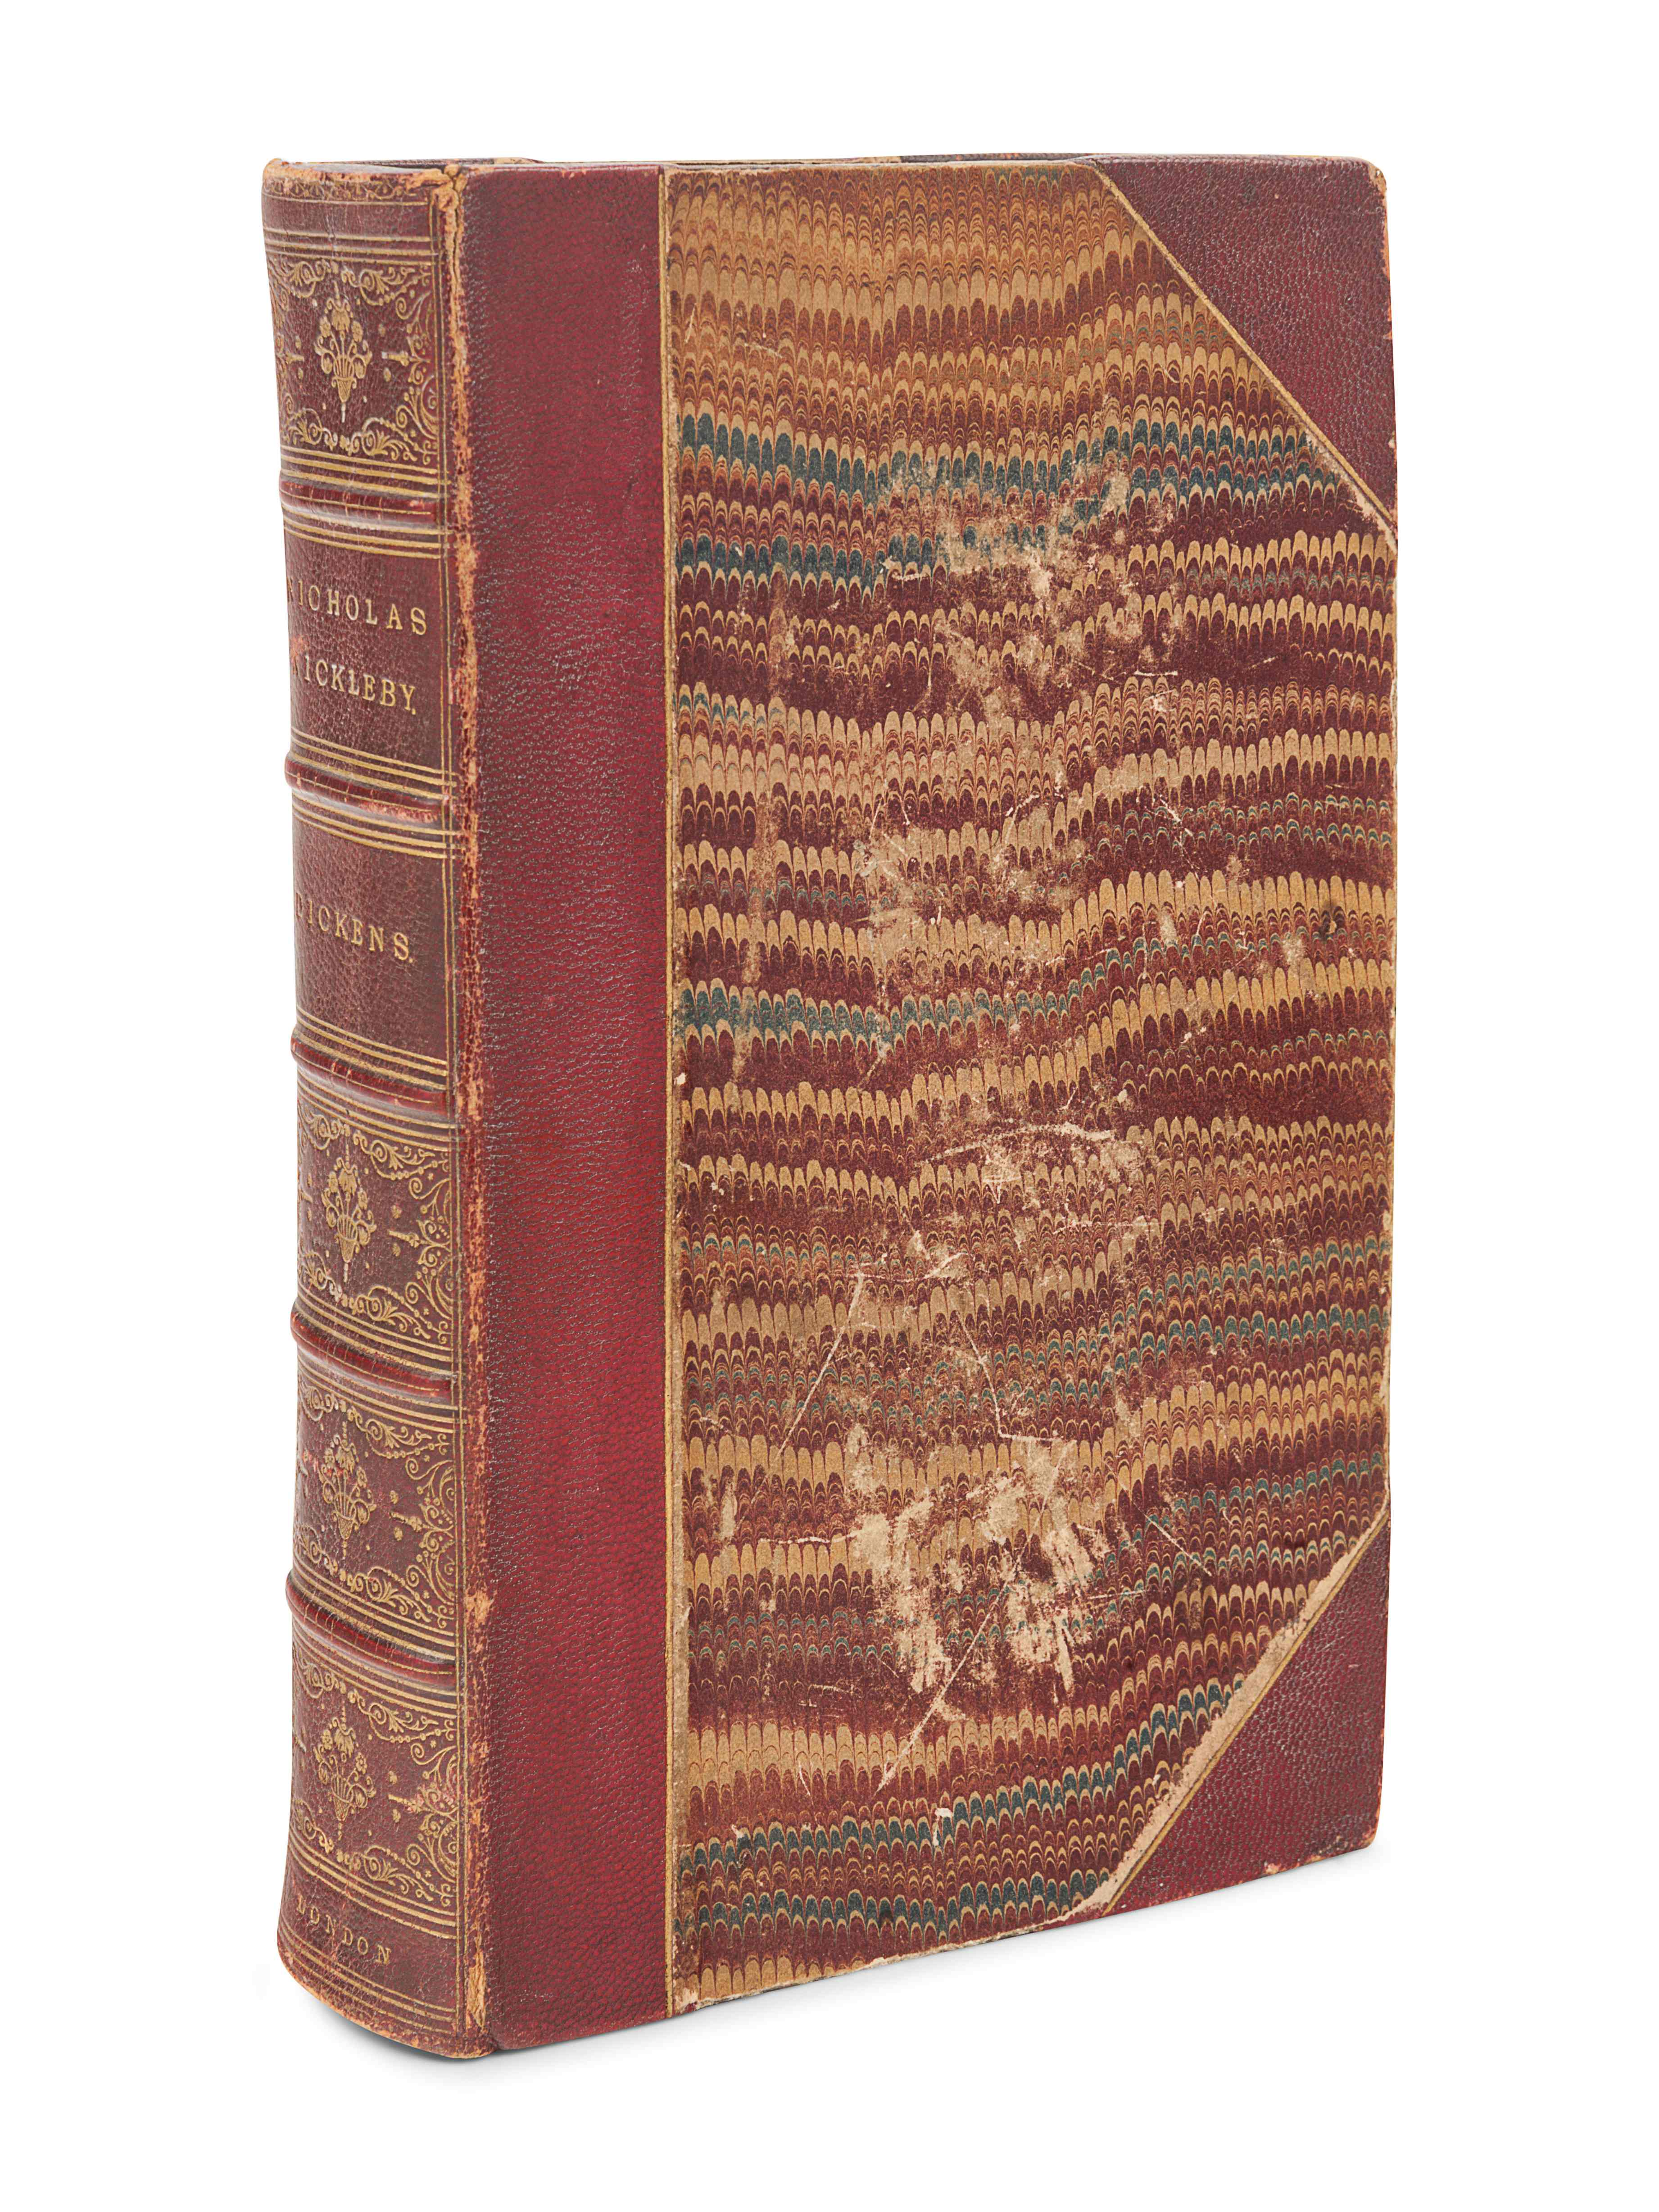 DICKENS, Charles (1812-1870). The Life and Adventures of Nicholas Nickleby. London: Chapman & Hall, - Image 2 of 2